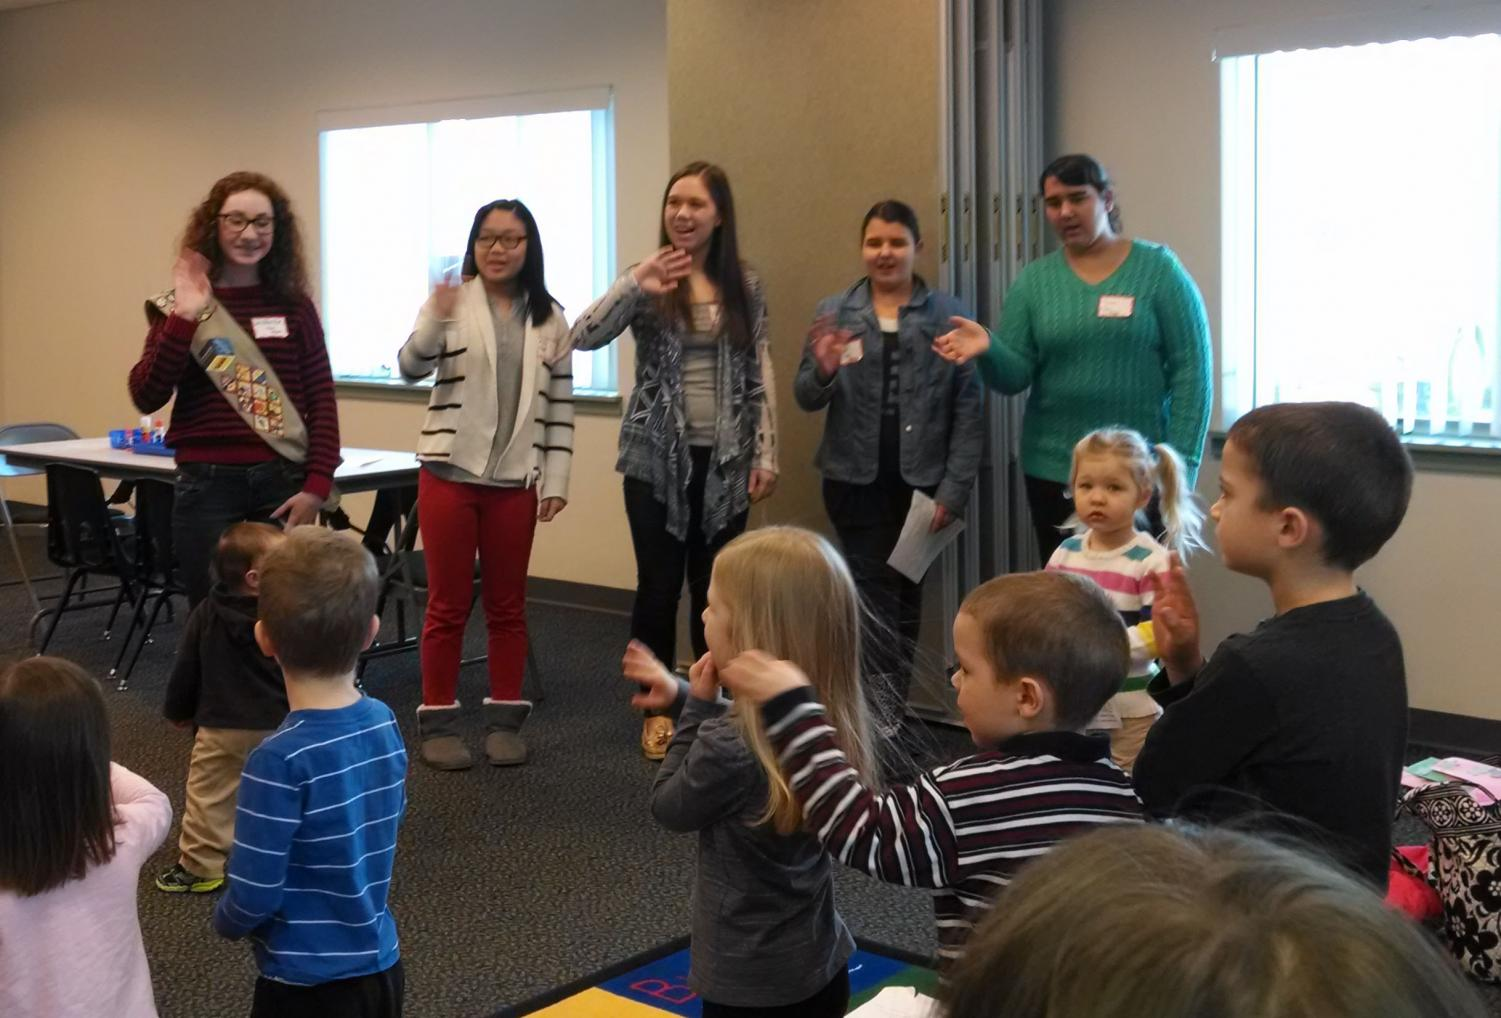 Girl Scout troop 6467 from Southern Lehigh High School teach a group of young children during a program about Doctor Seuss.